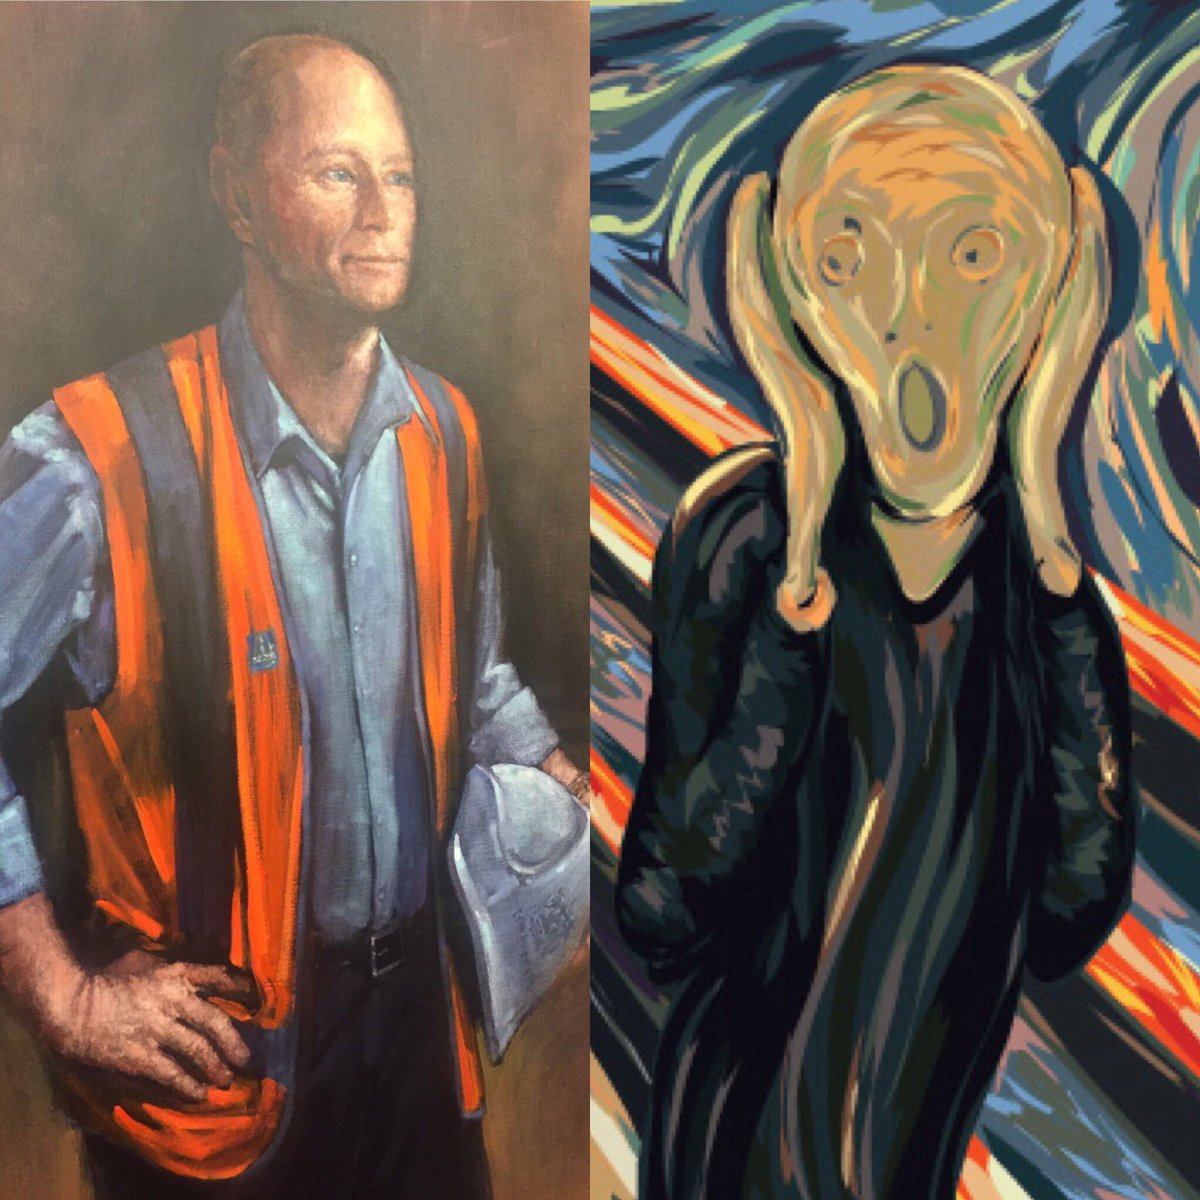 High-vis brought low: Campbell Newman portrait reflects his